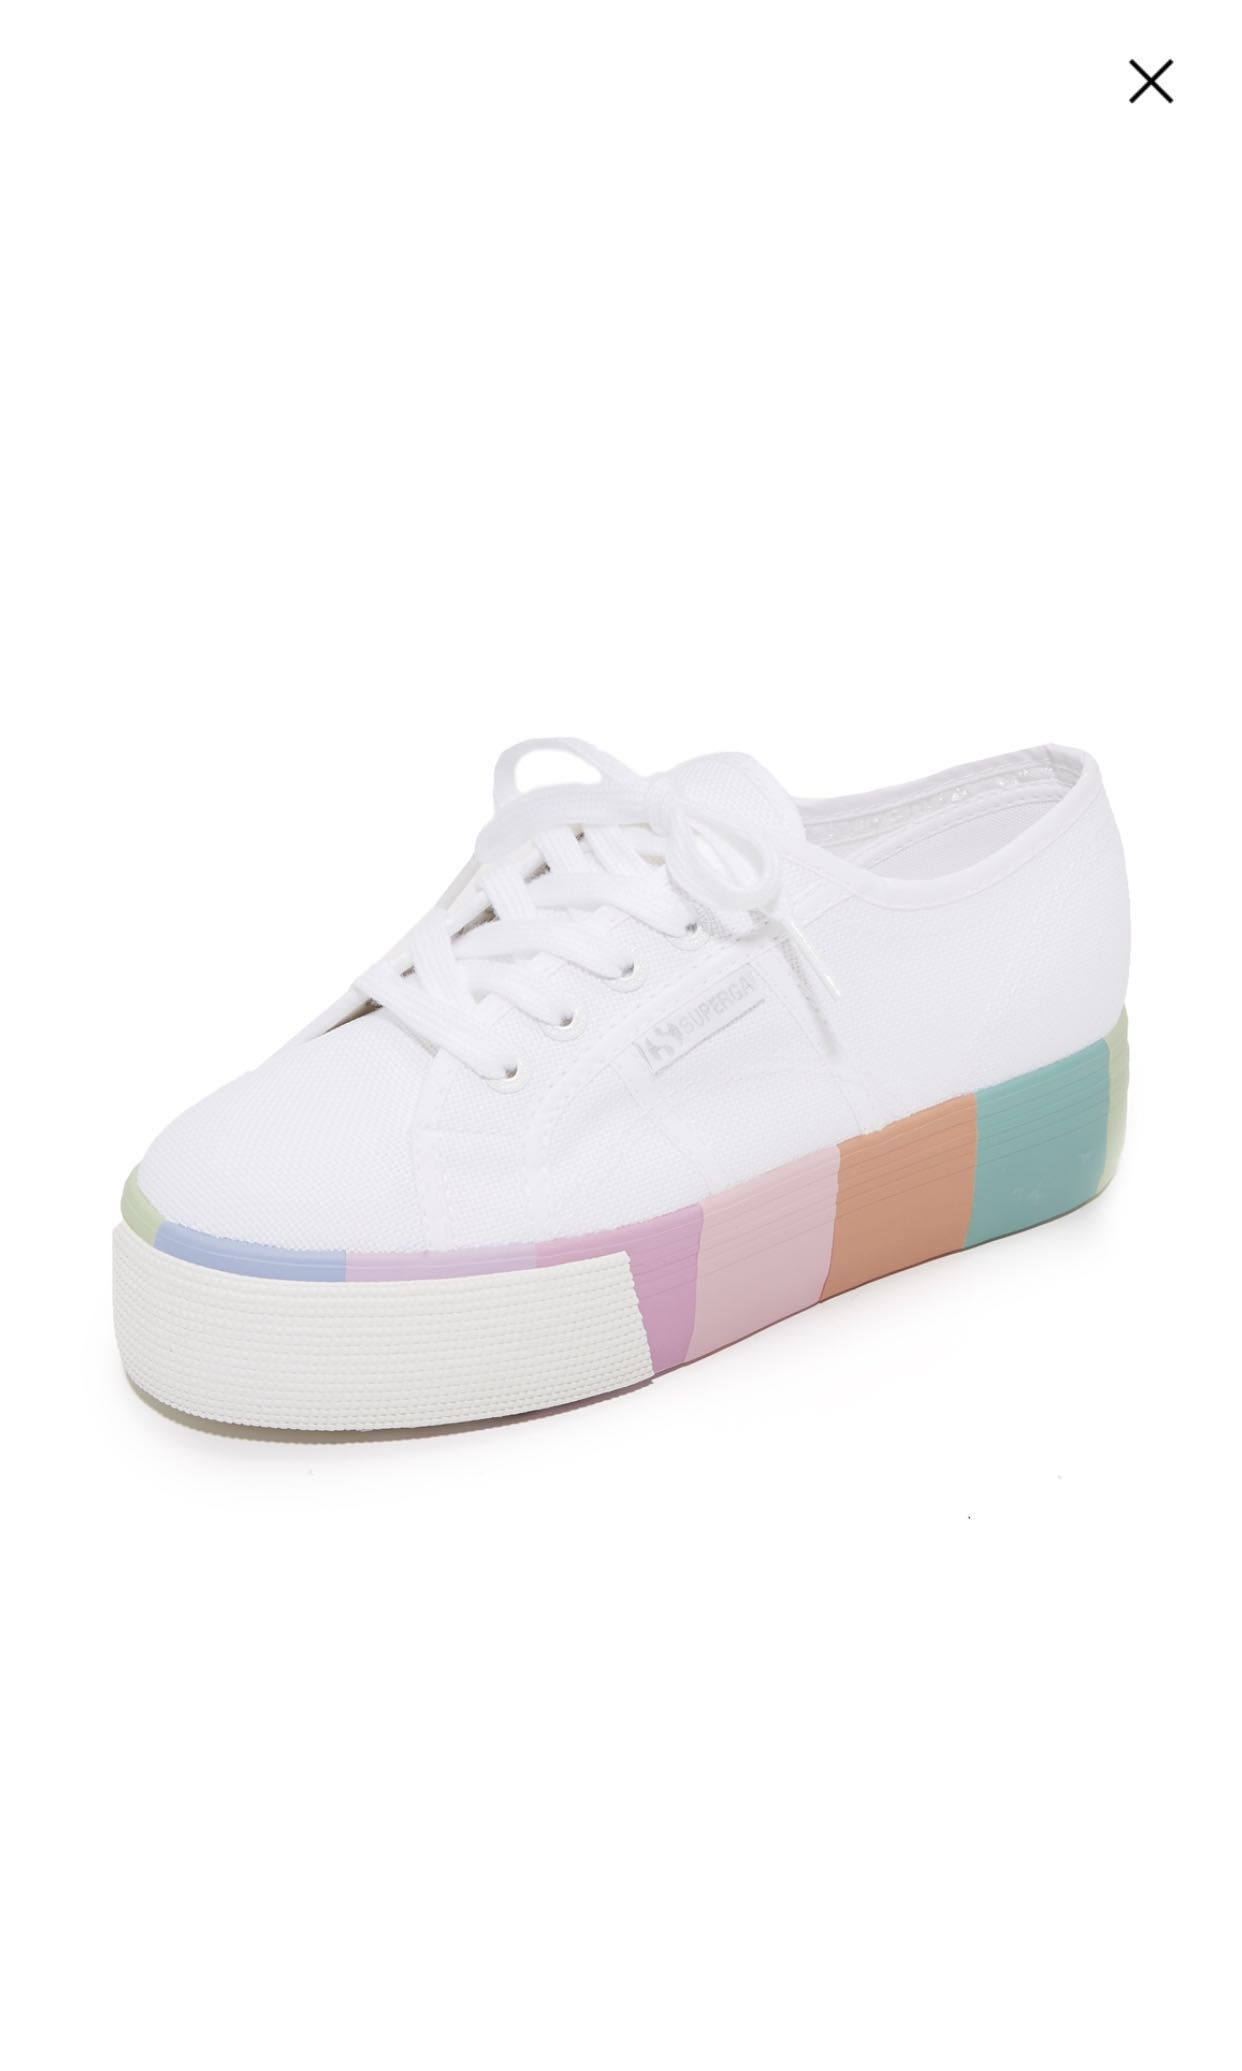 62db882b96e1 Superga multi color platform sneaker US8.5 EU39.5